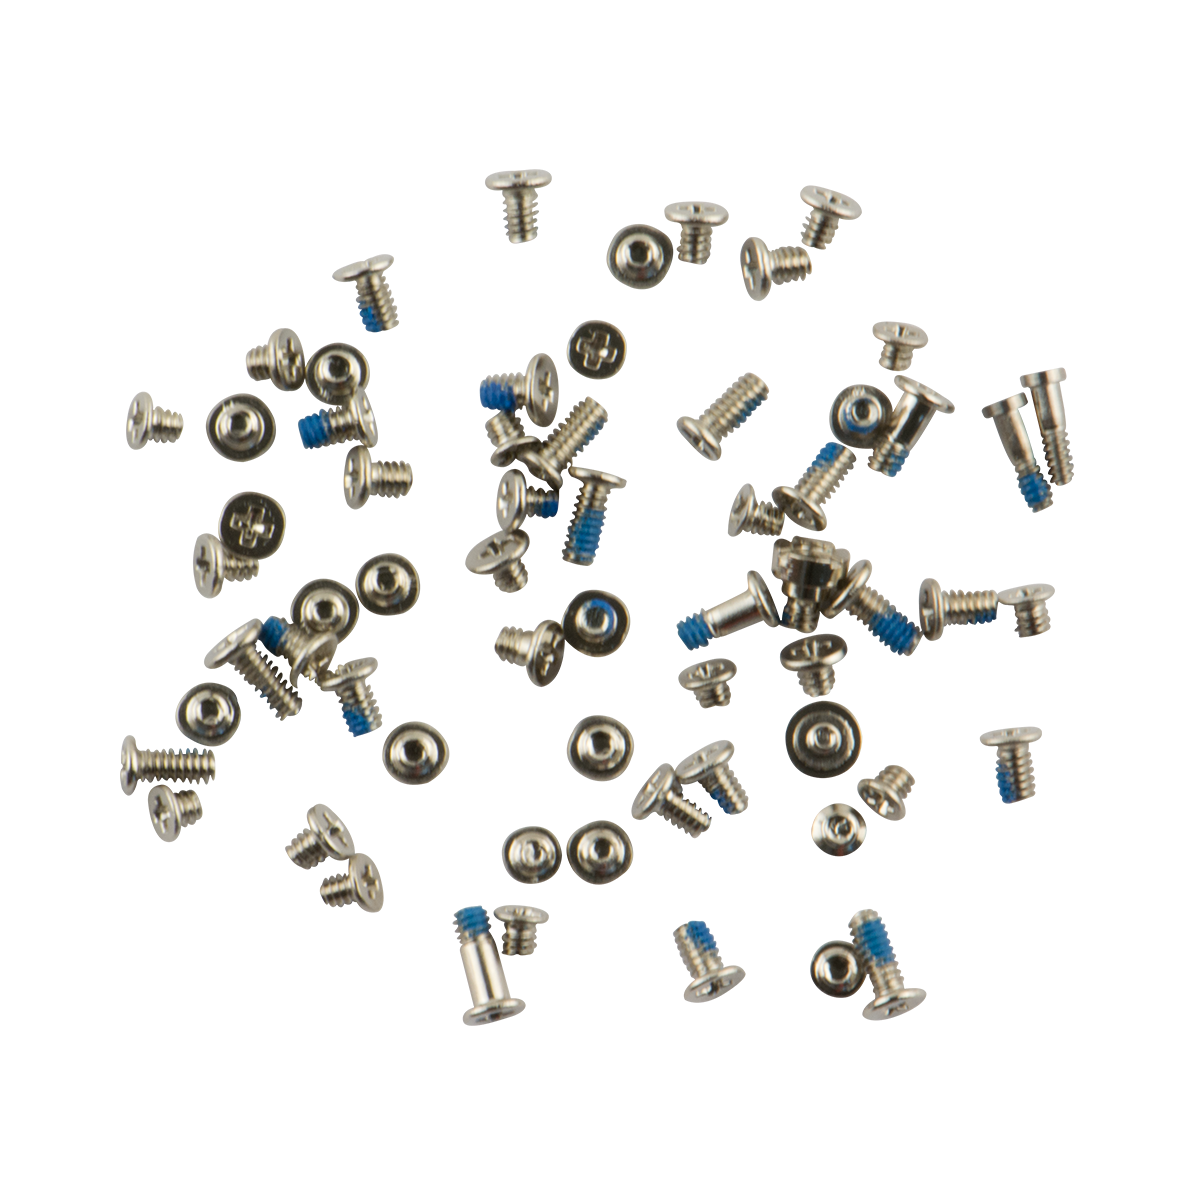 iphone-6-complete-screw-set-silver-2_(2)_RWU99S6VXK31.png